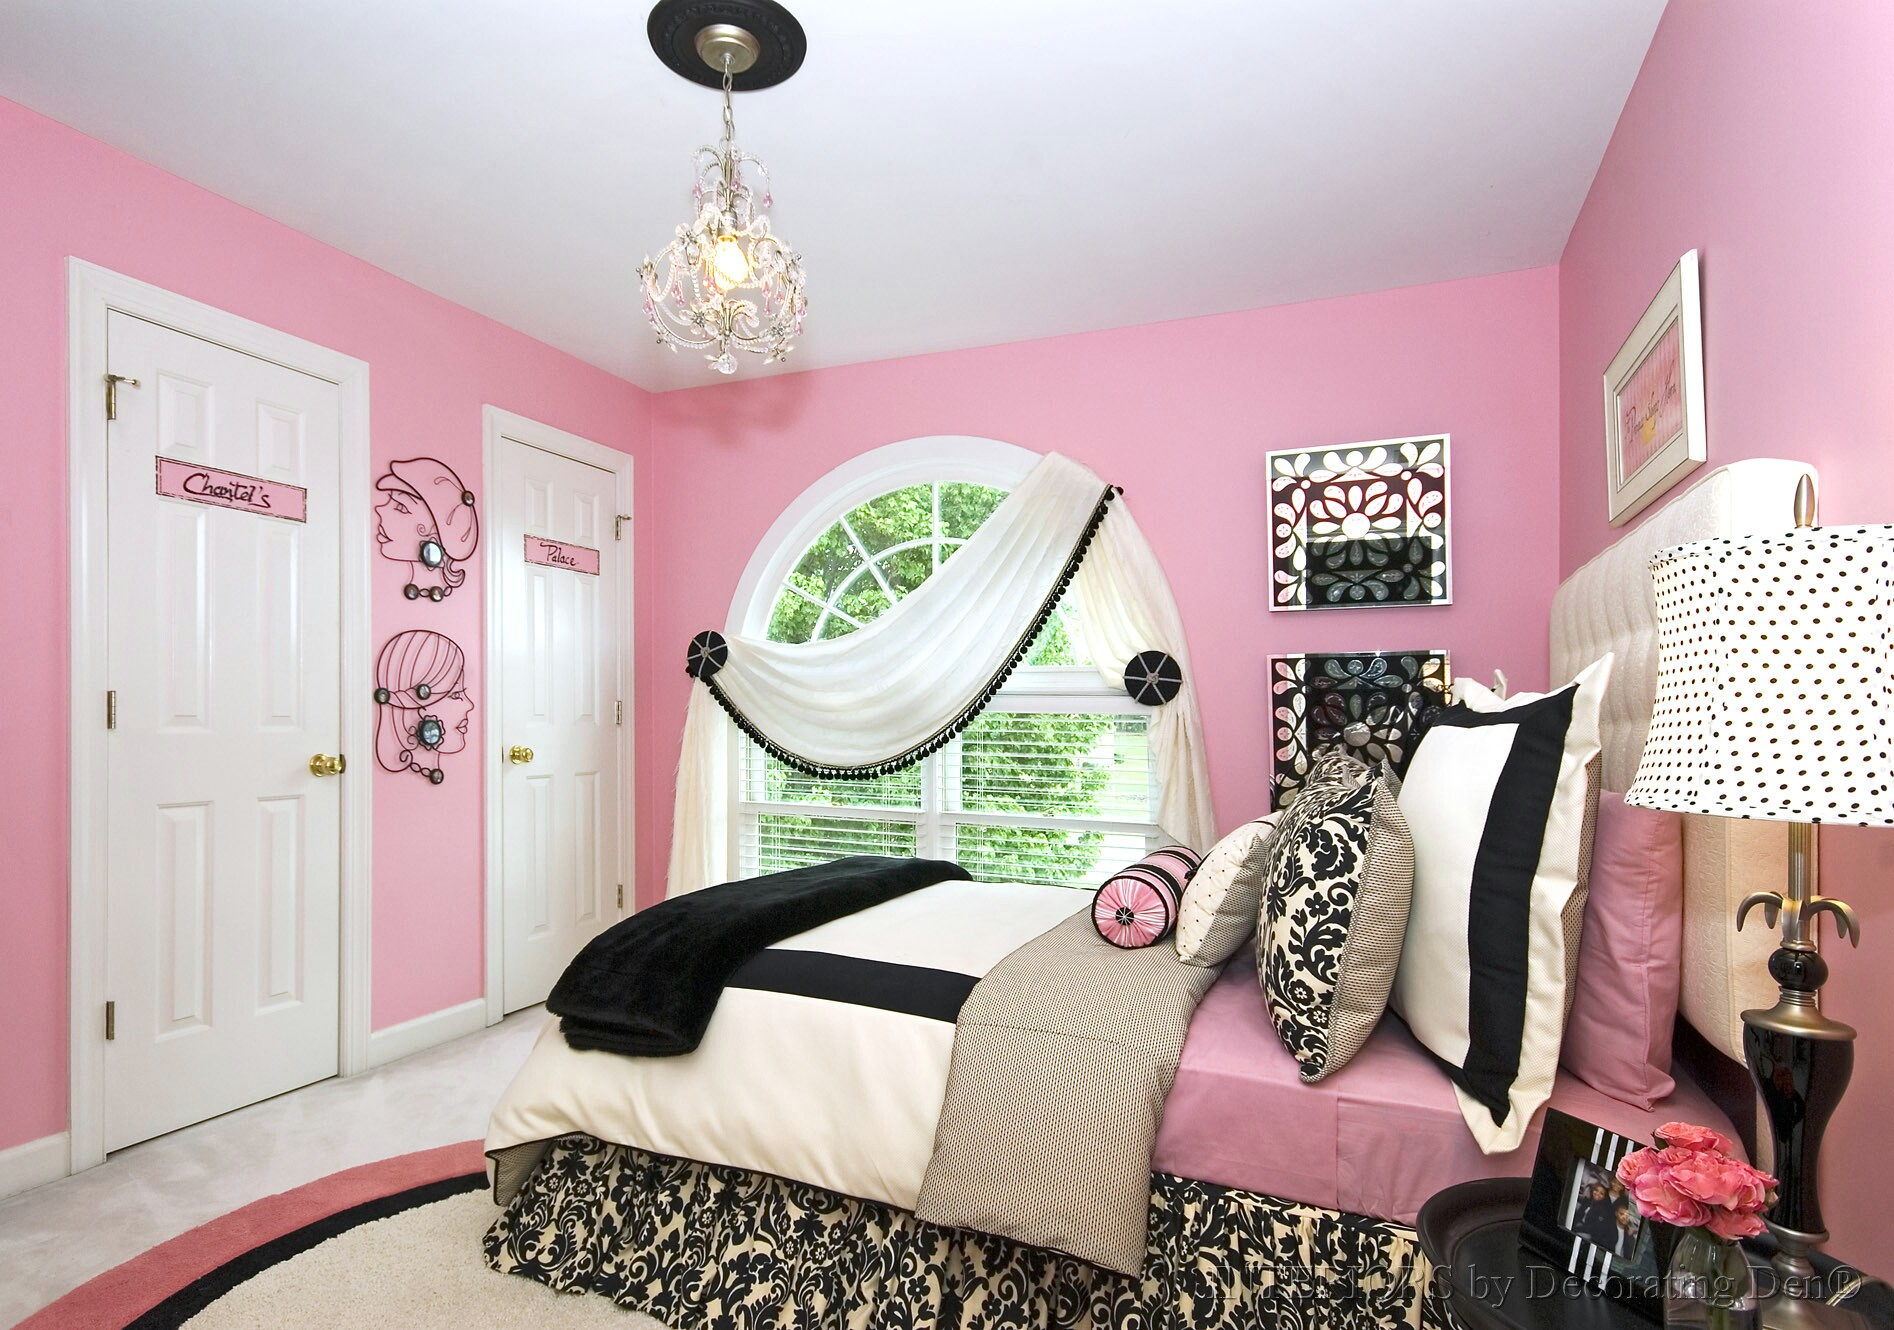 A Bedroom Makeover for a Teen Girls Room  Devine Decorating Results for Your Interior